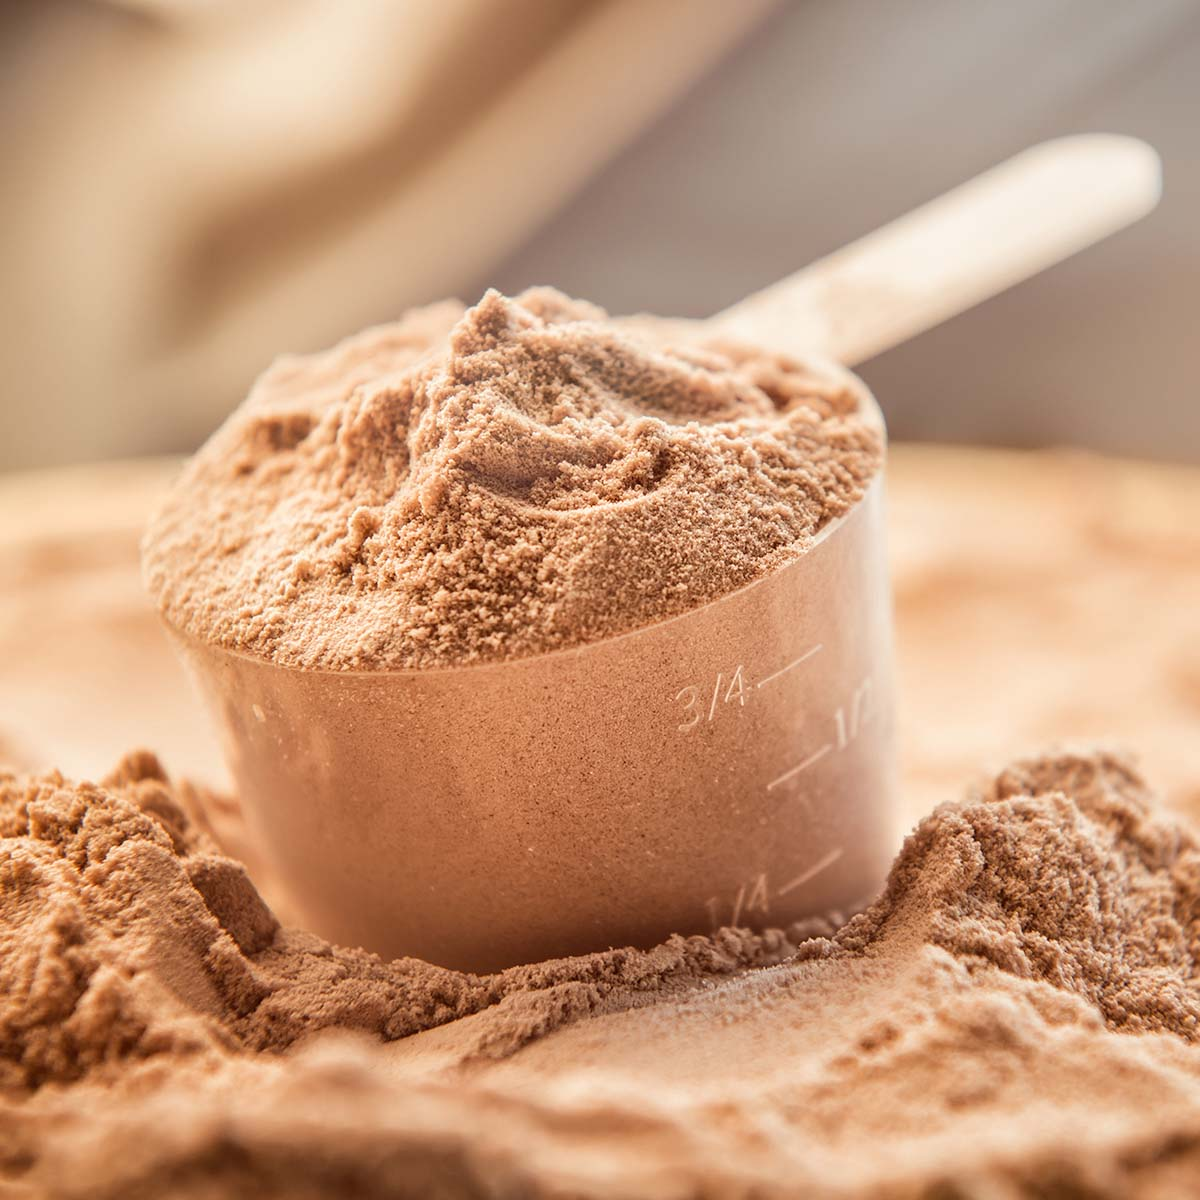 Whey Protein - Do You Need It?